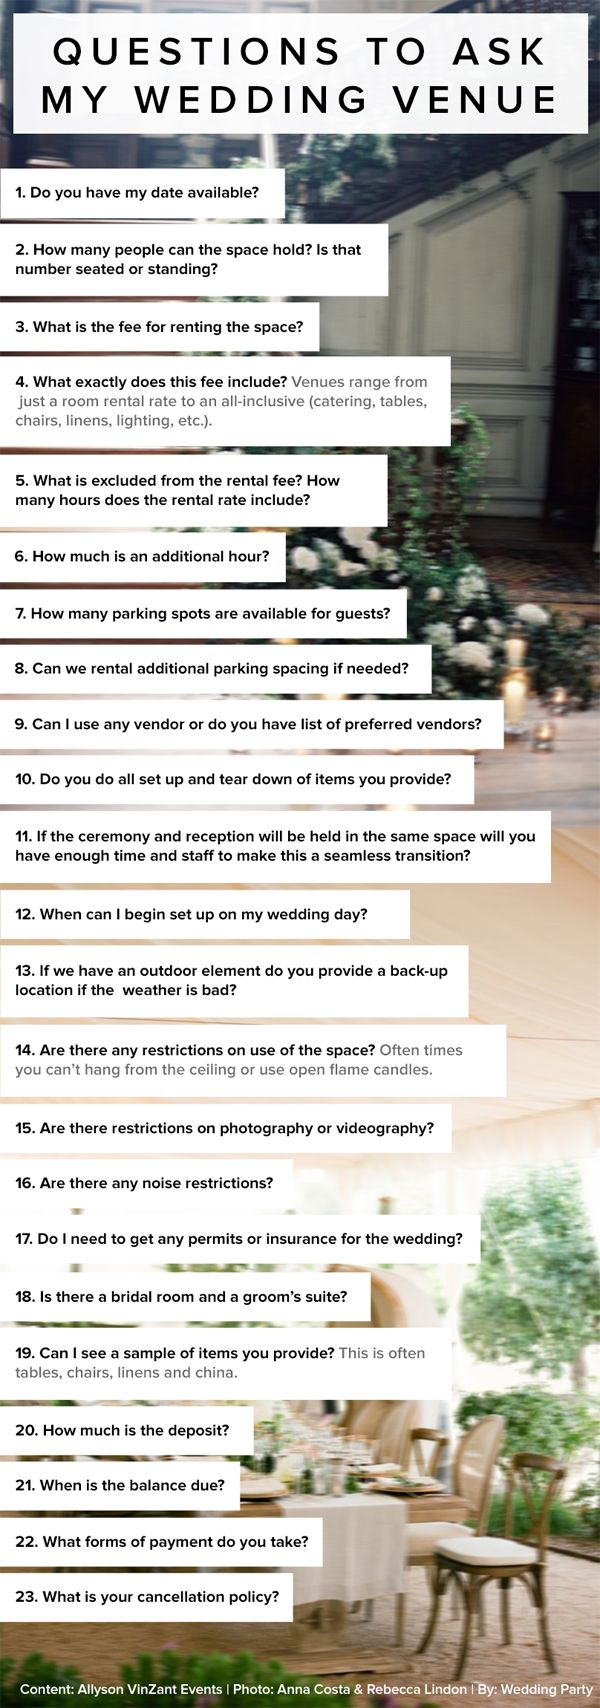 It's a great idea to send this via email to potential venues, or ask this questions over a phone interview, then compare them later. I love it!